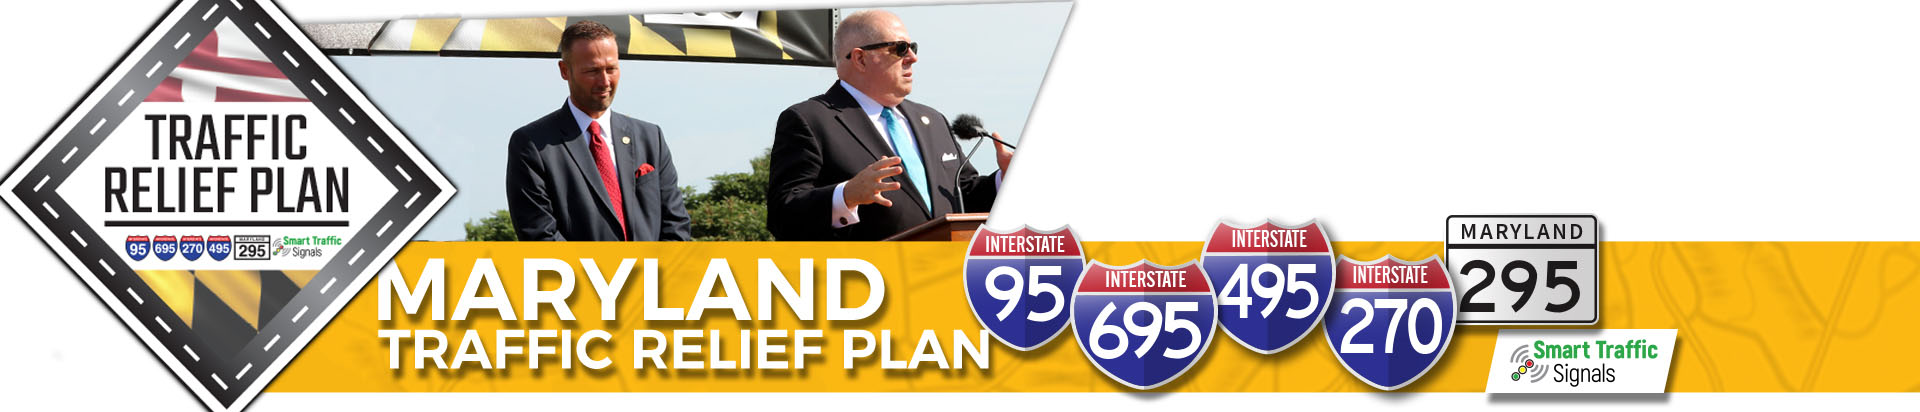 Maryland Traffic Relief Plan